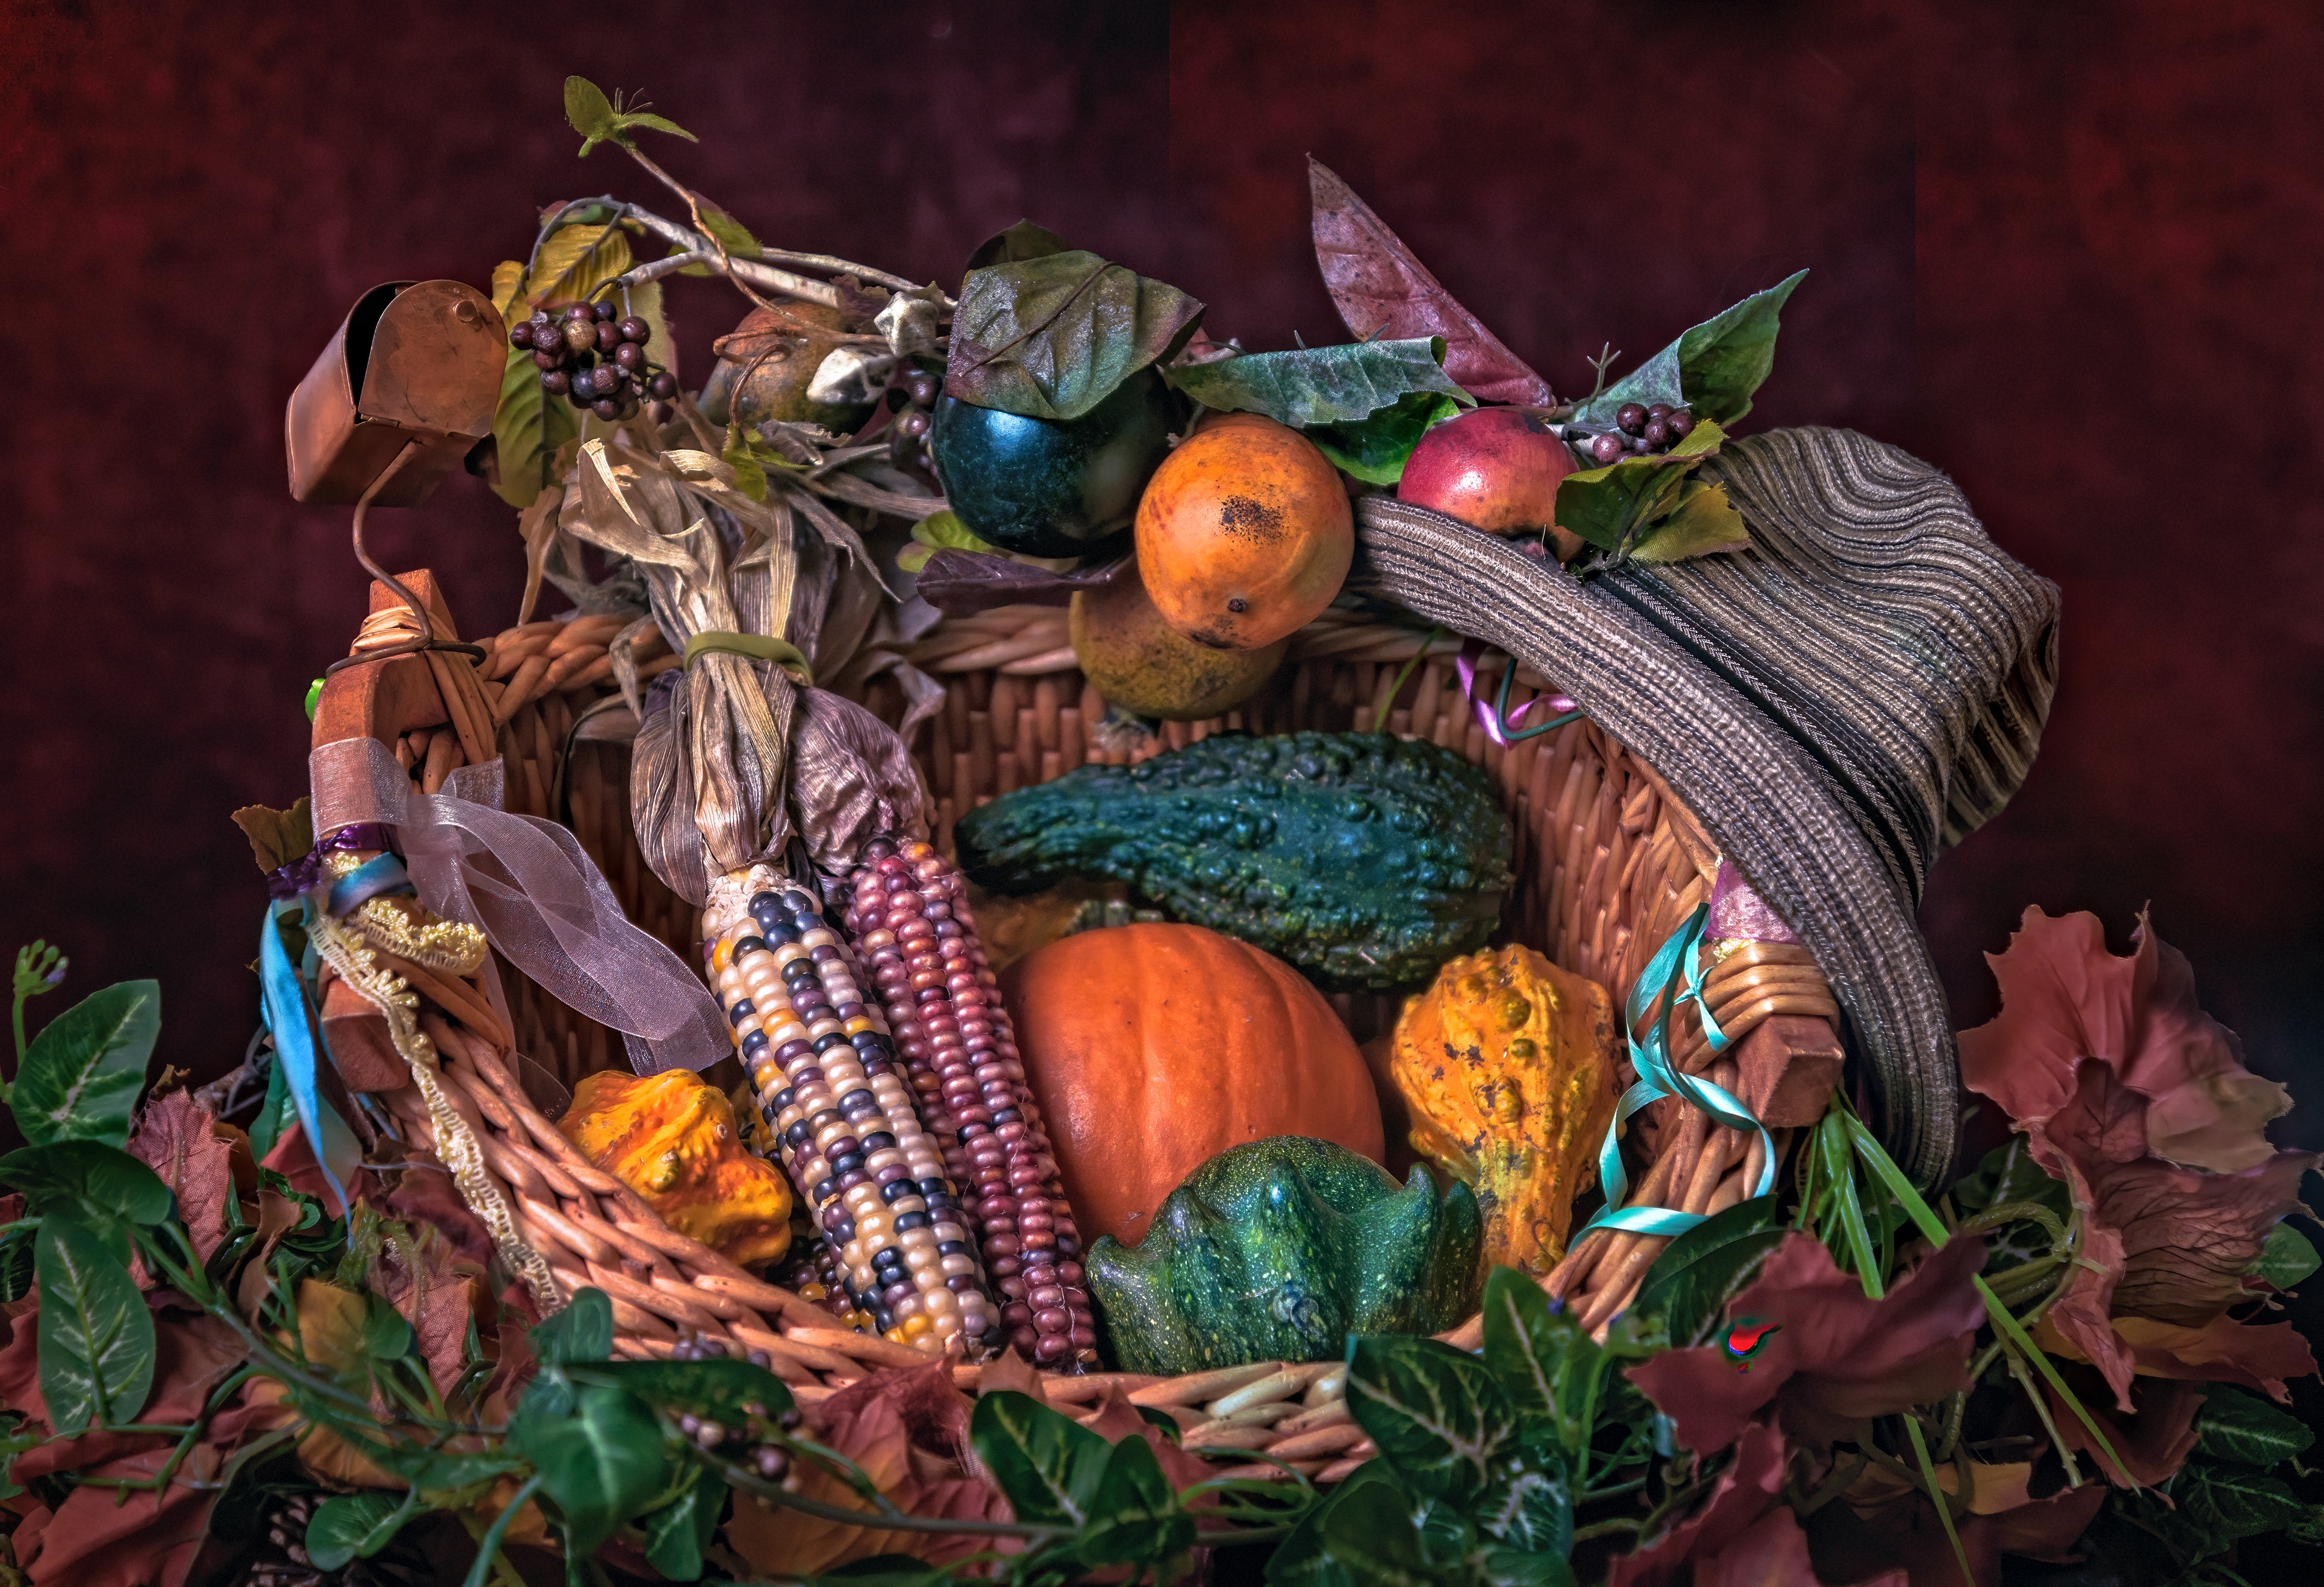 colorful corn and squash in festive basket